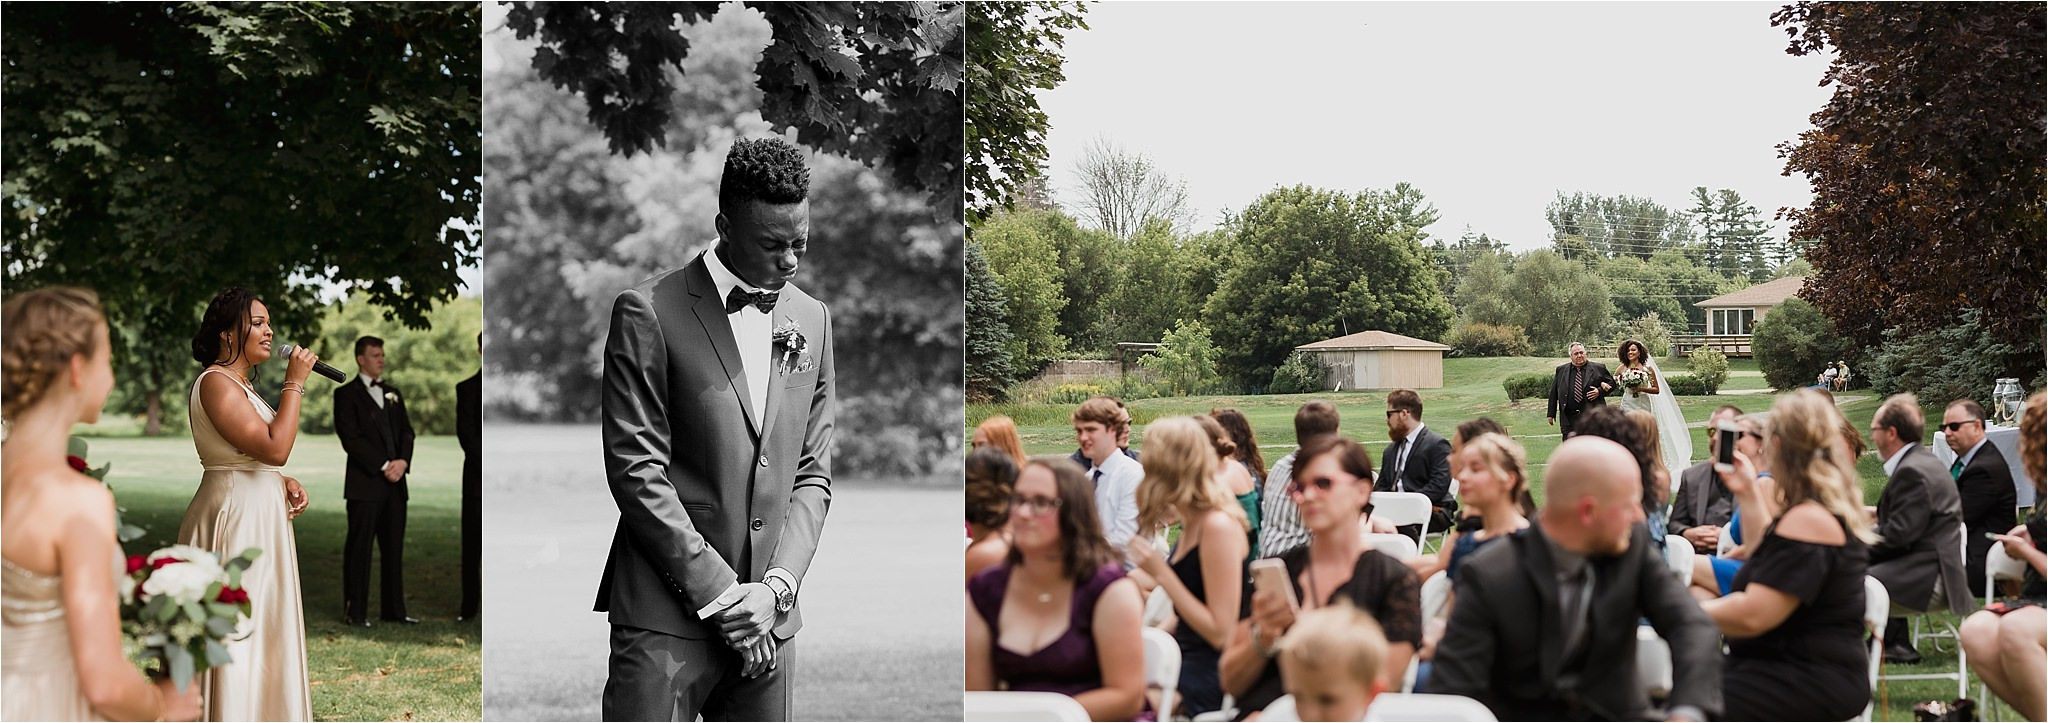 The Old Mill Wedding - Sonia V Photo - Wedding Engagement Elopement Photographer